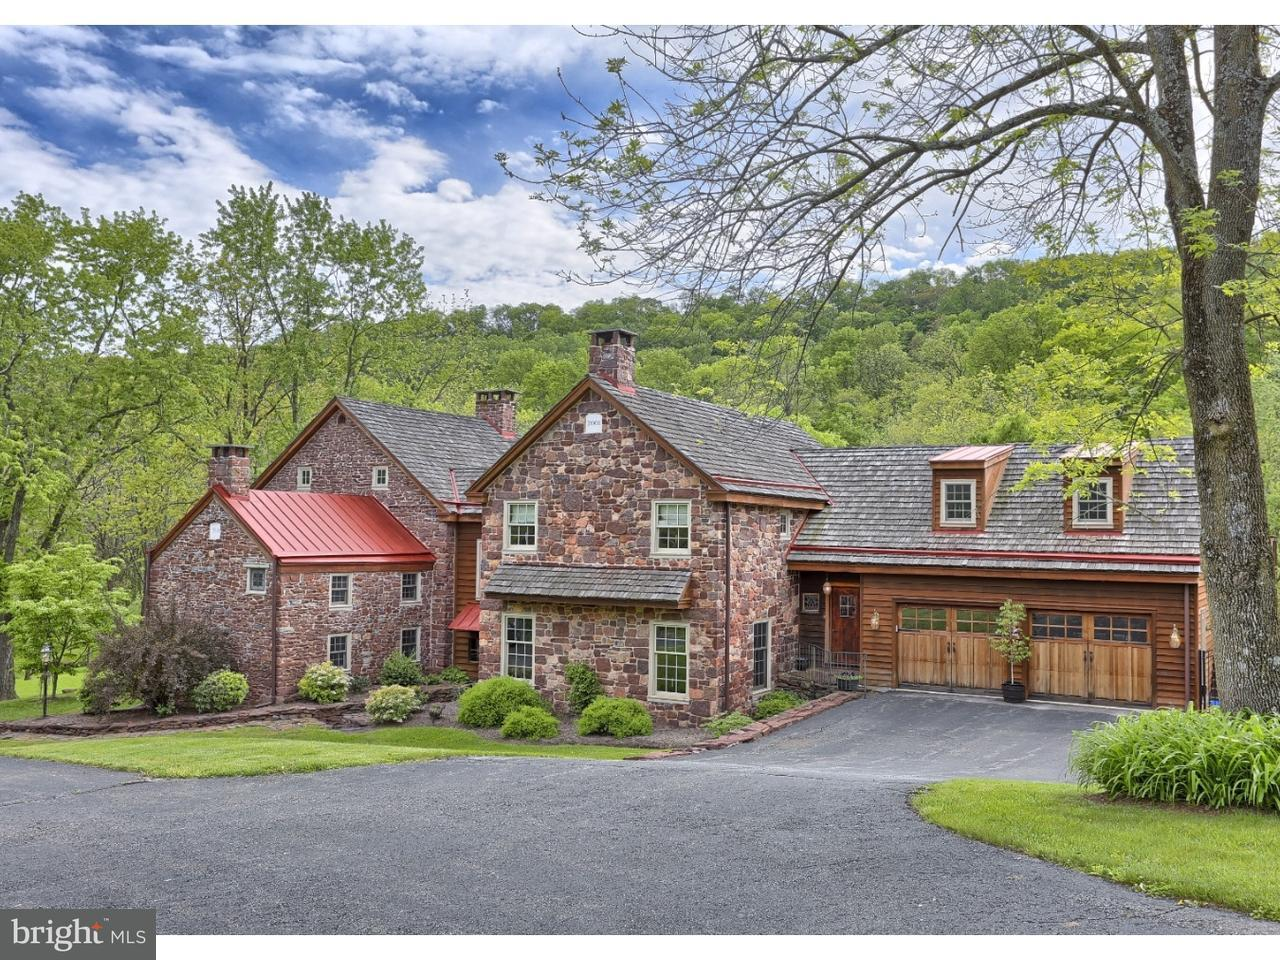 Single Family Home for Sale at 54 PINE FORGE Road Boyertown, Pennsylvania 19512 United States